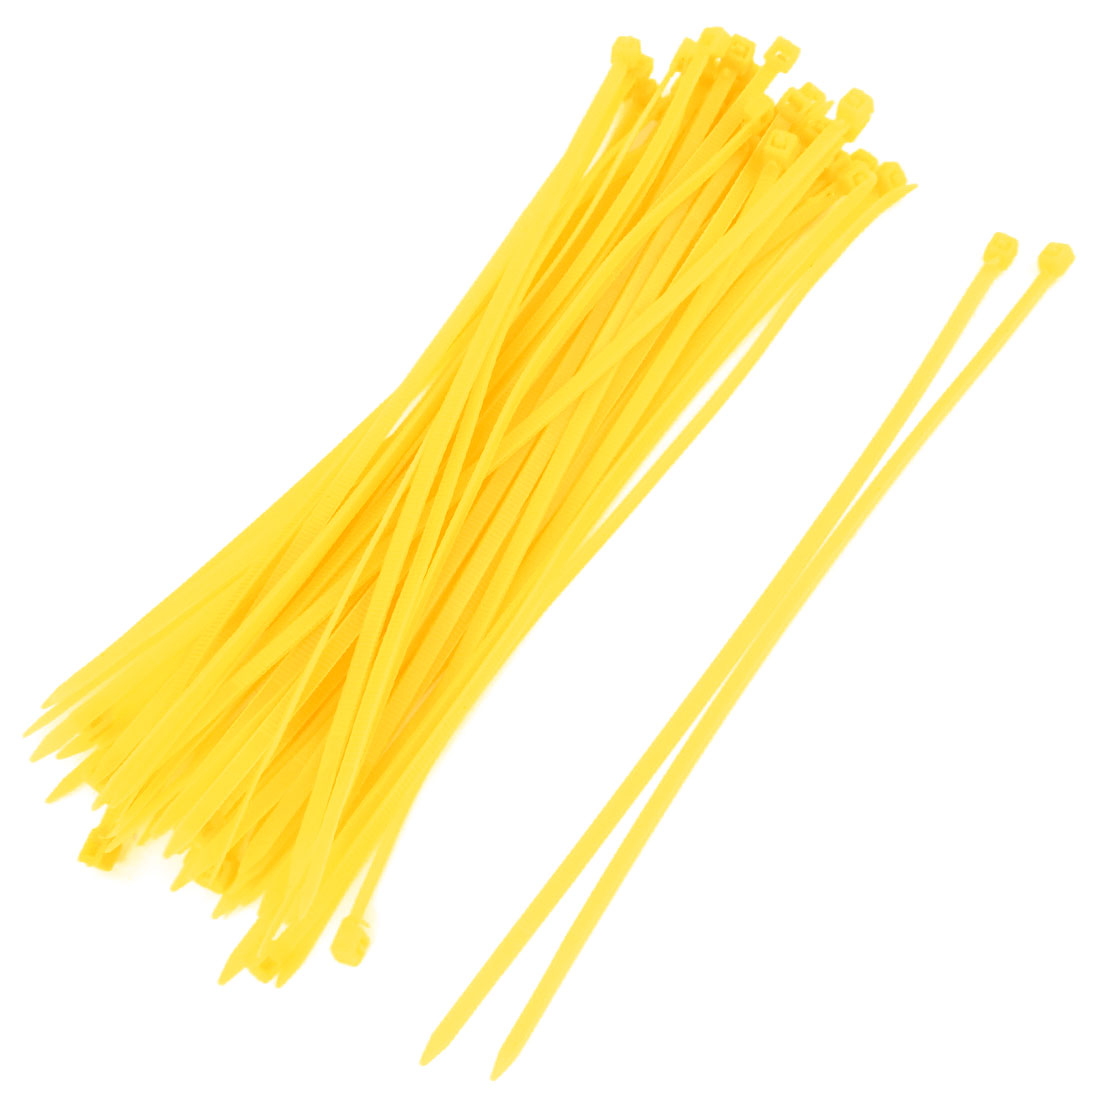 50 Pcs Dark Yellow Plastic 190 x 3mm Wire Zip Cable Ties